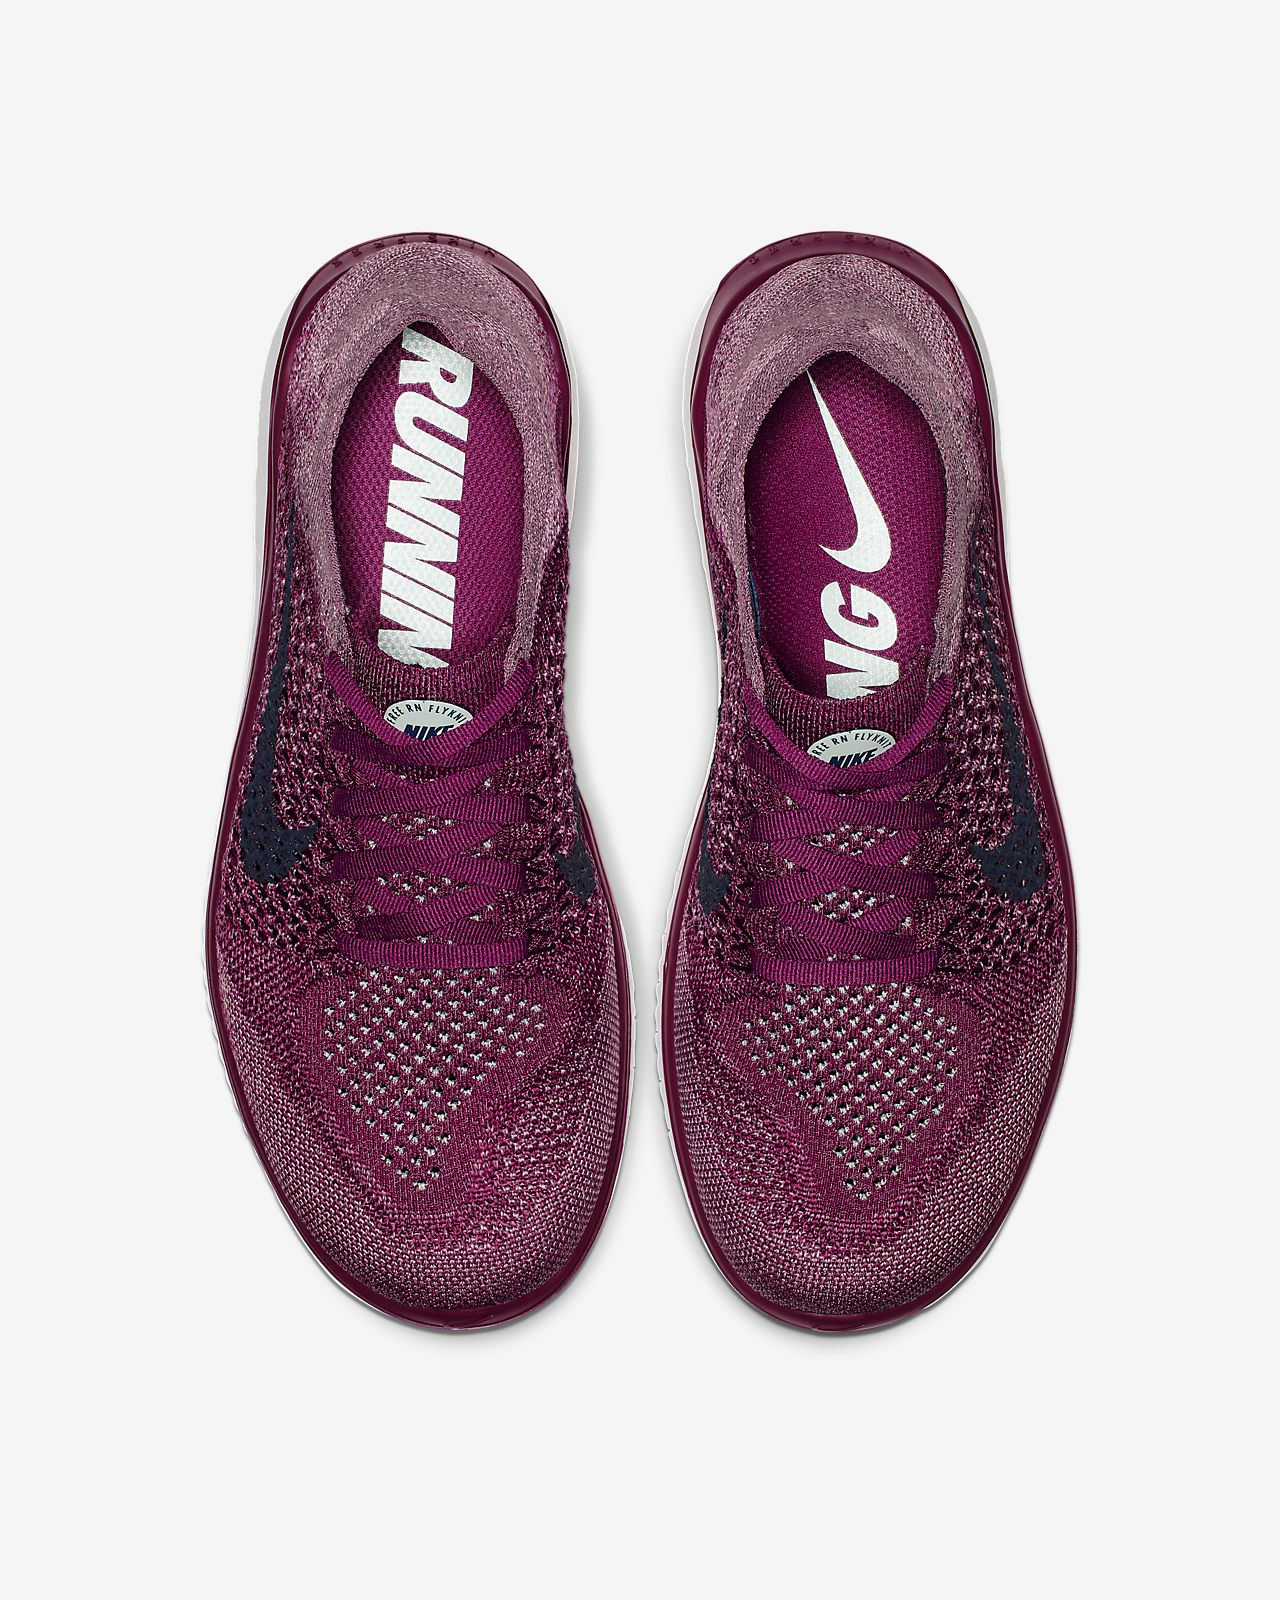 Nike Free Womens Size 6 Running Shoes Lilac Green Laces Sales Of Quality Assurance Clothing, Shoes & Accessories Athletic Shoes